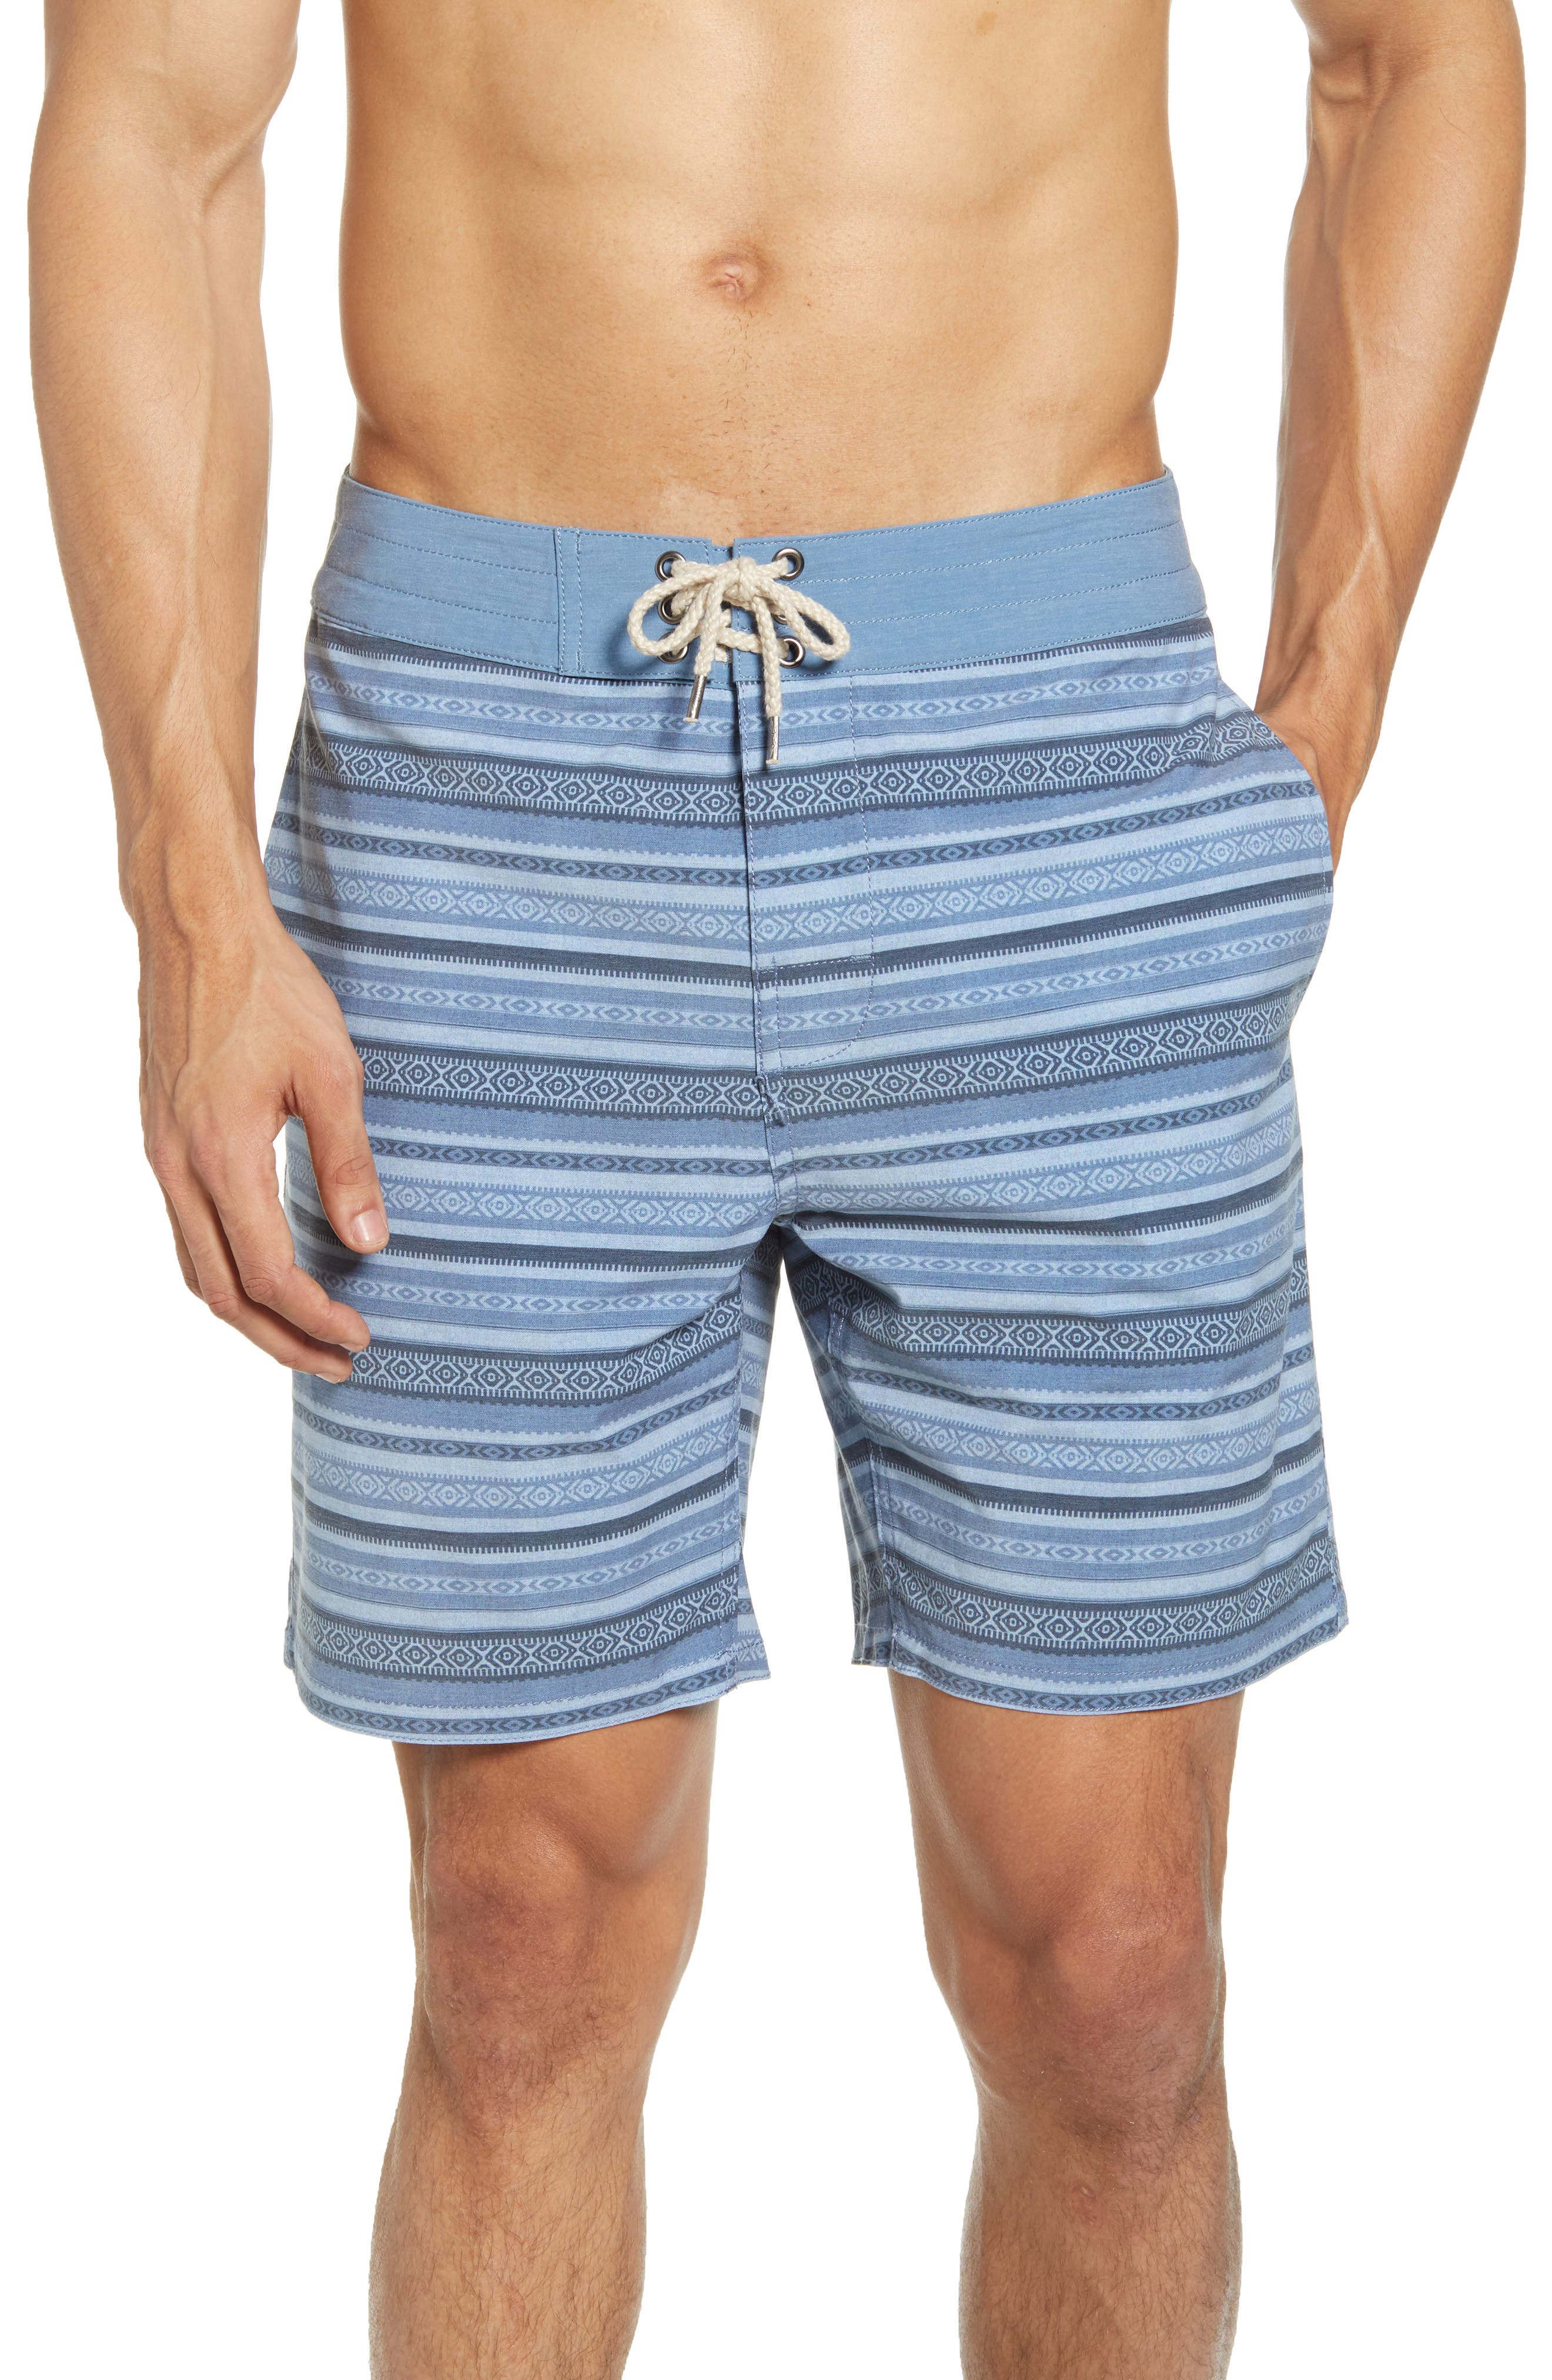 A touch of stretch ensures a stay-put fit no matter how you move in these board shorts crafted with recycled polyester and finished with a back zip pocket. Style Name: Faherty Classic Board Shorts. Style Number: 6015700. Available in stores.